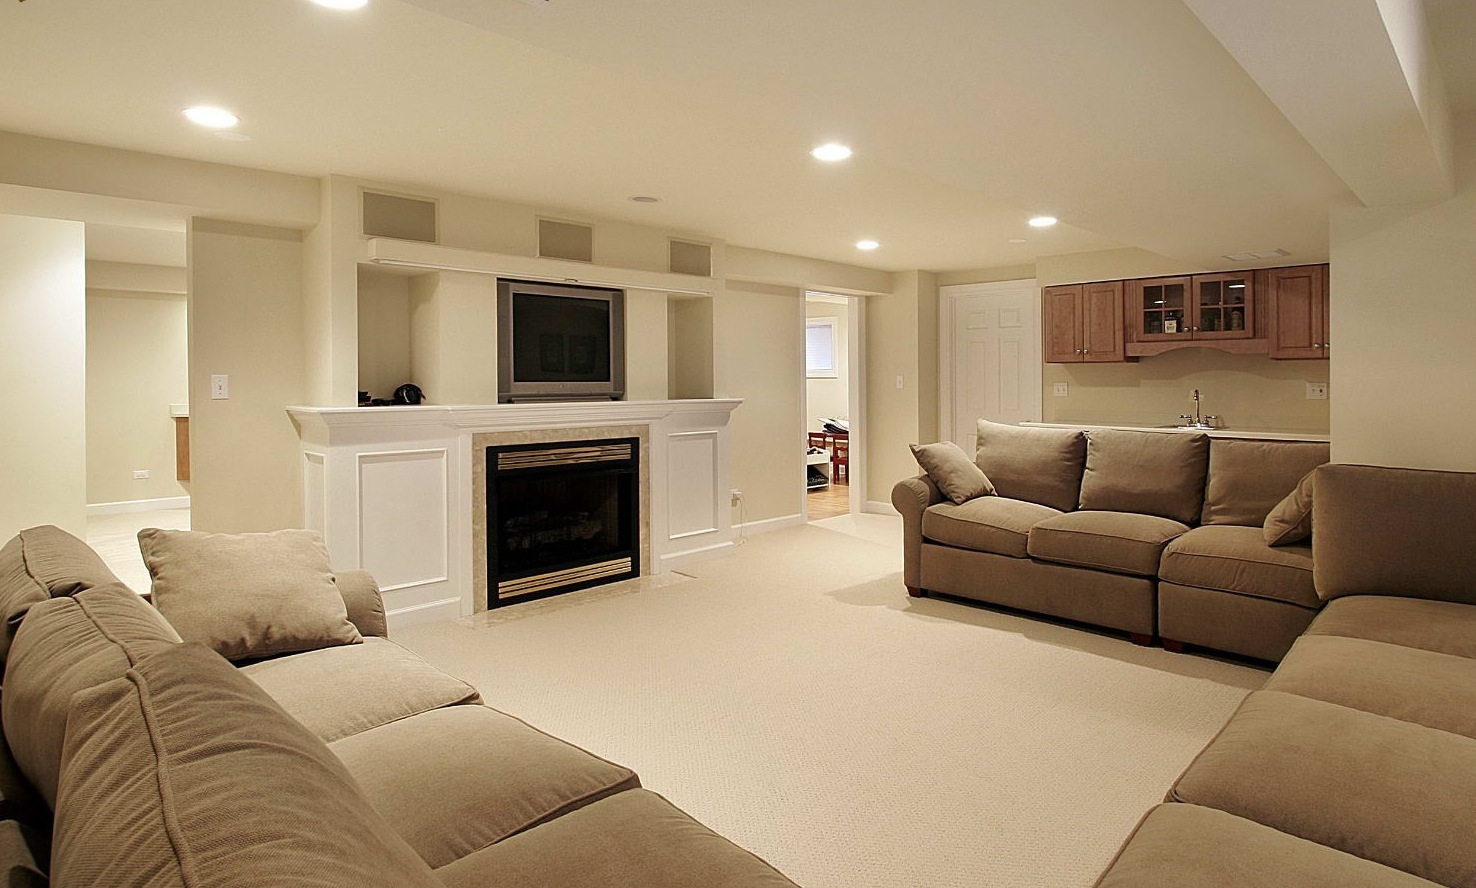 Remodel Basement Ideas 30 Basement Remodeling Ideas & Inspiration